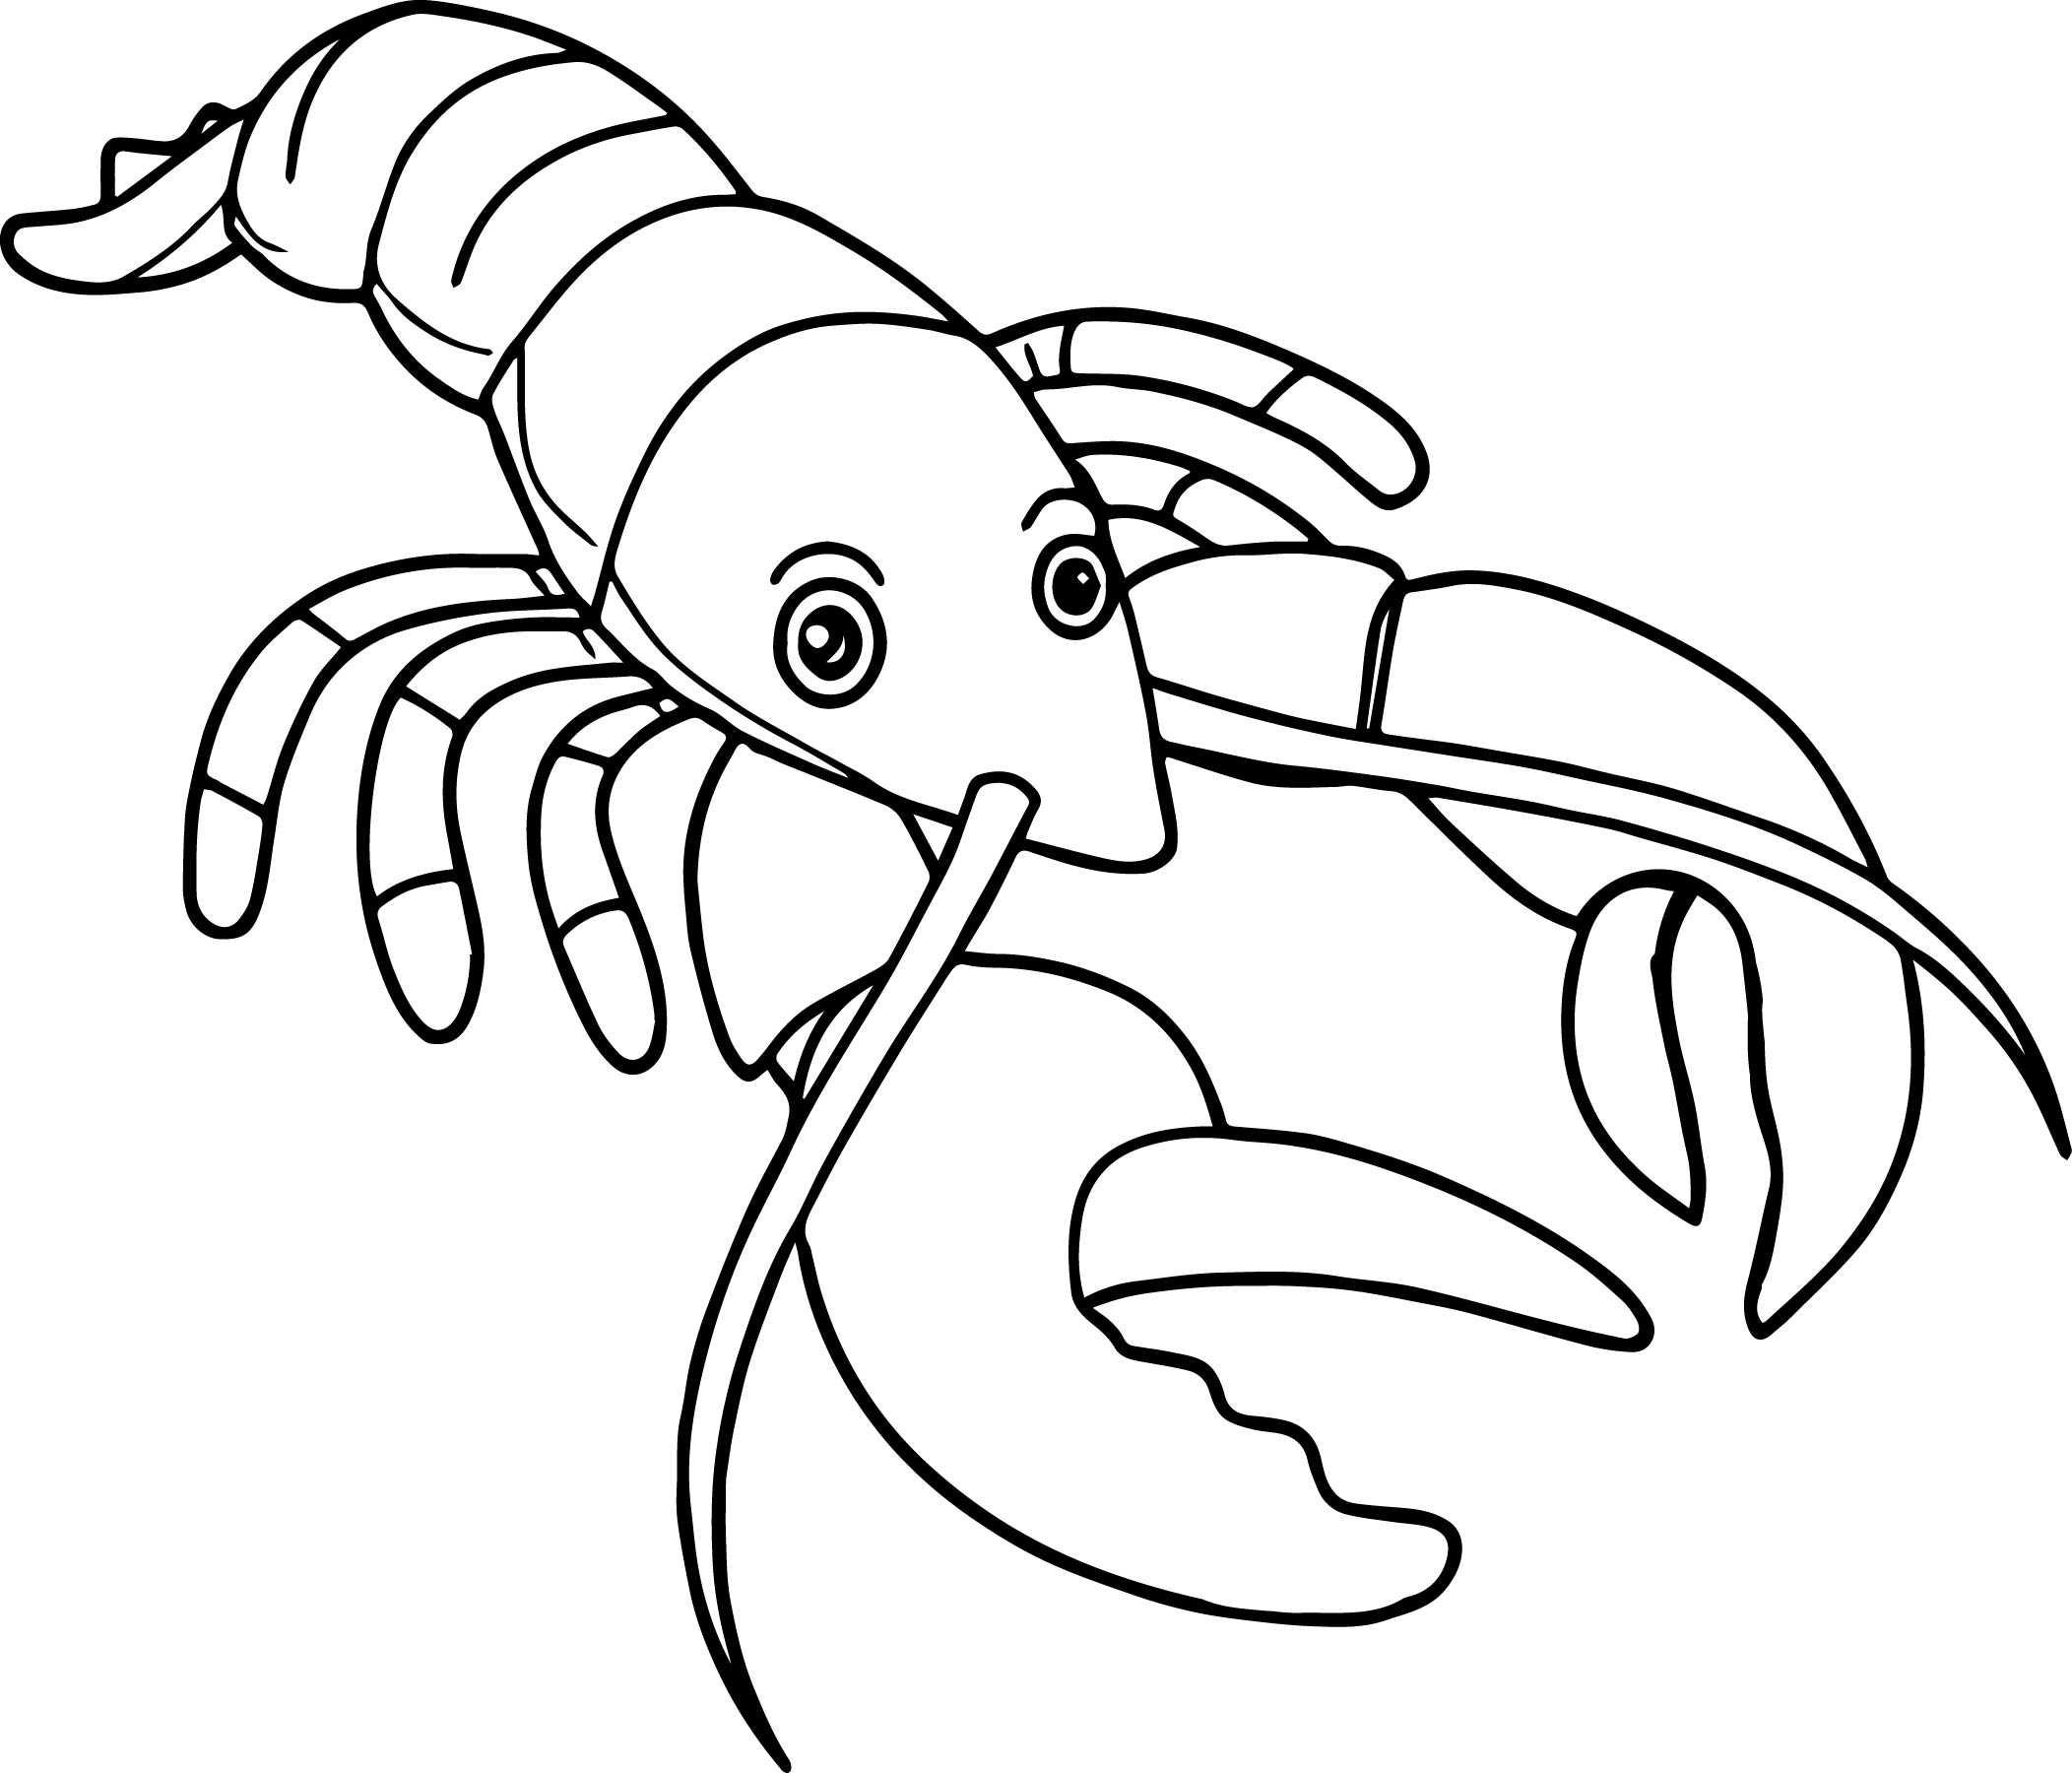 Lobster Coloring Page